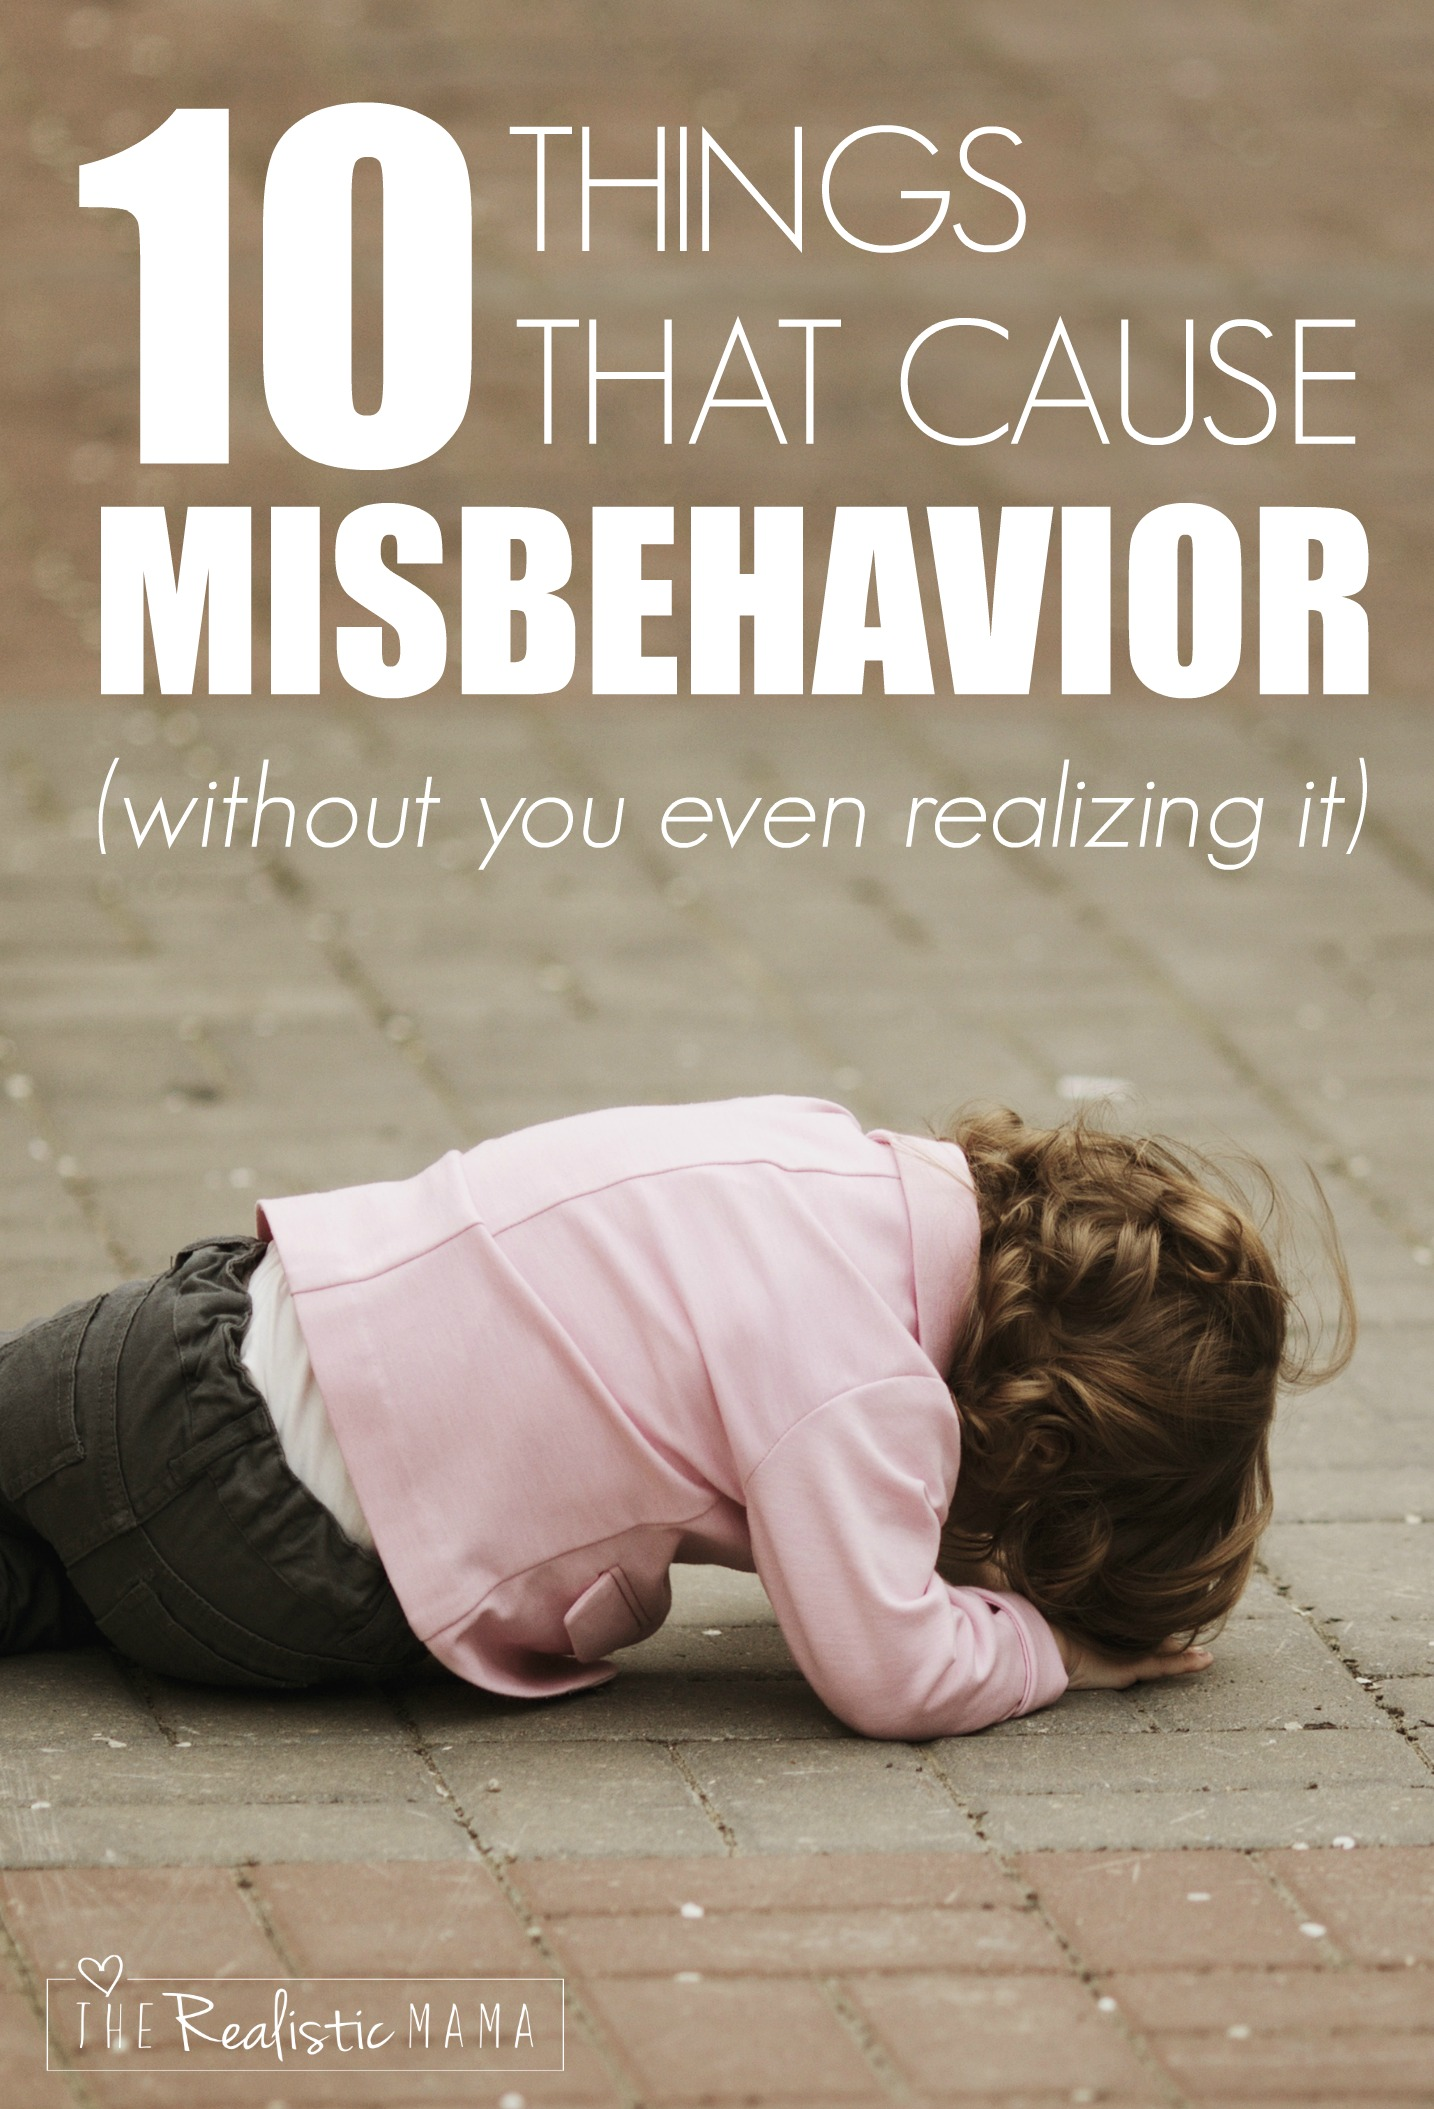 10 Things That Cause Misbehavior without You Even Realizing It